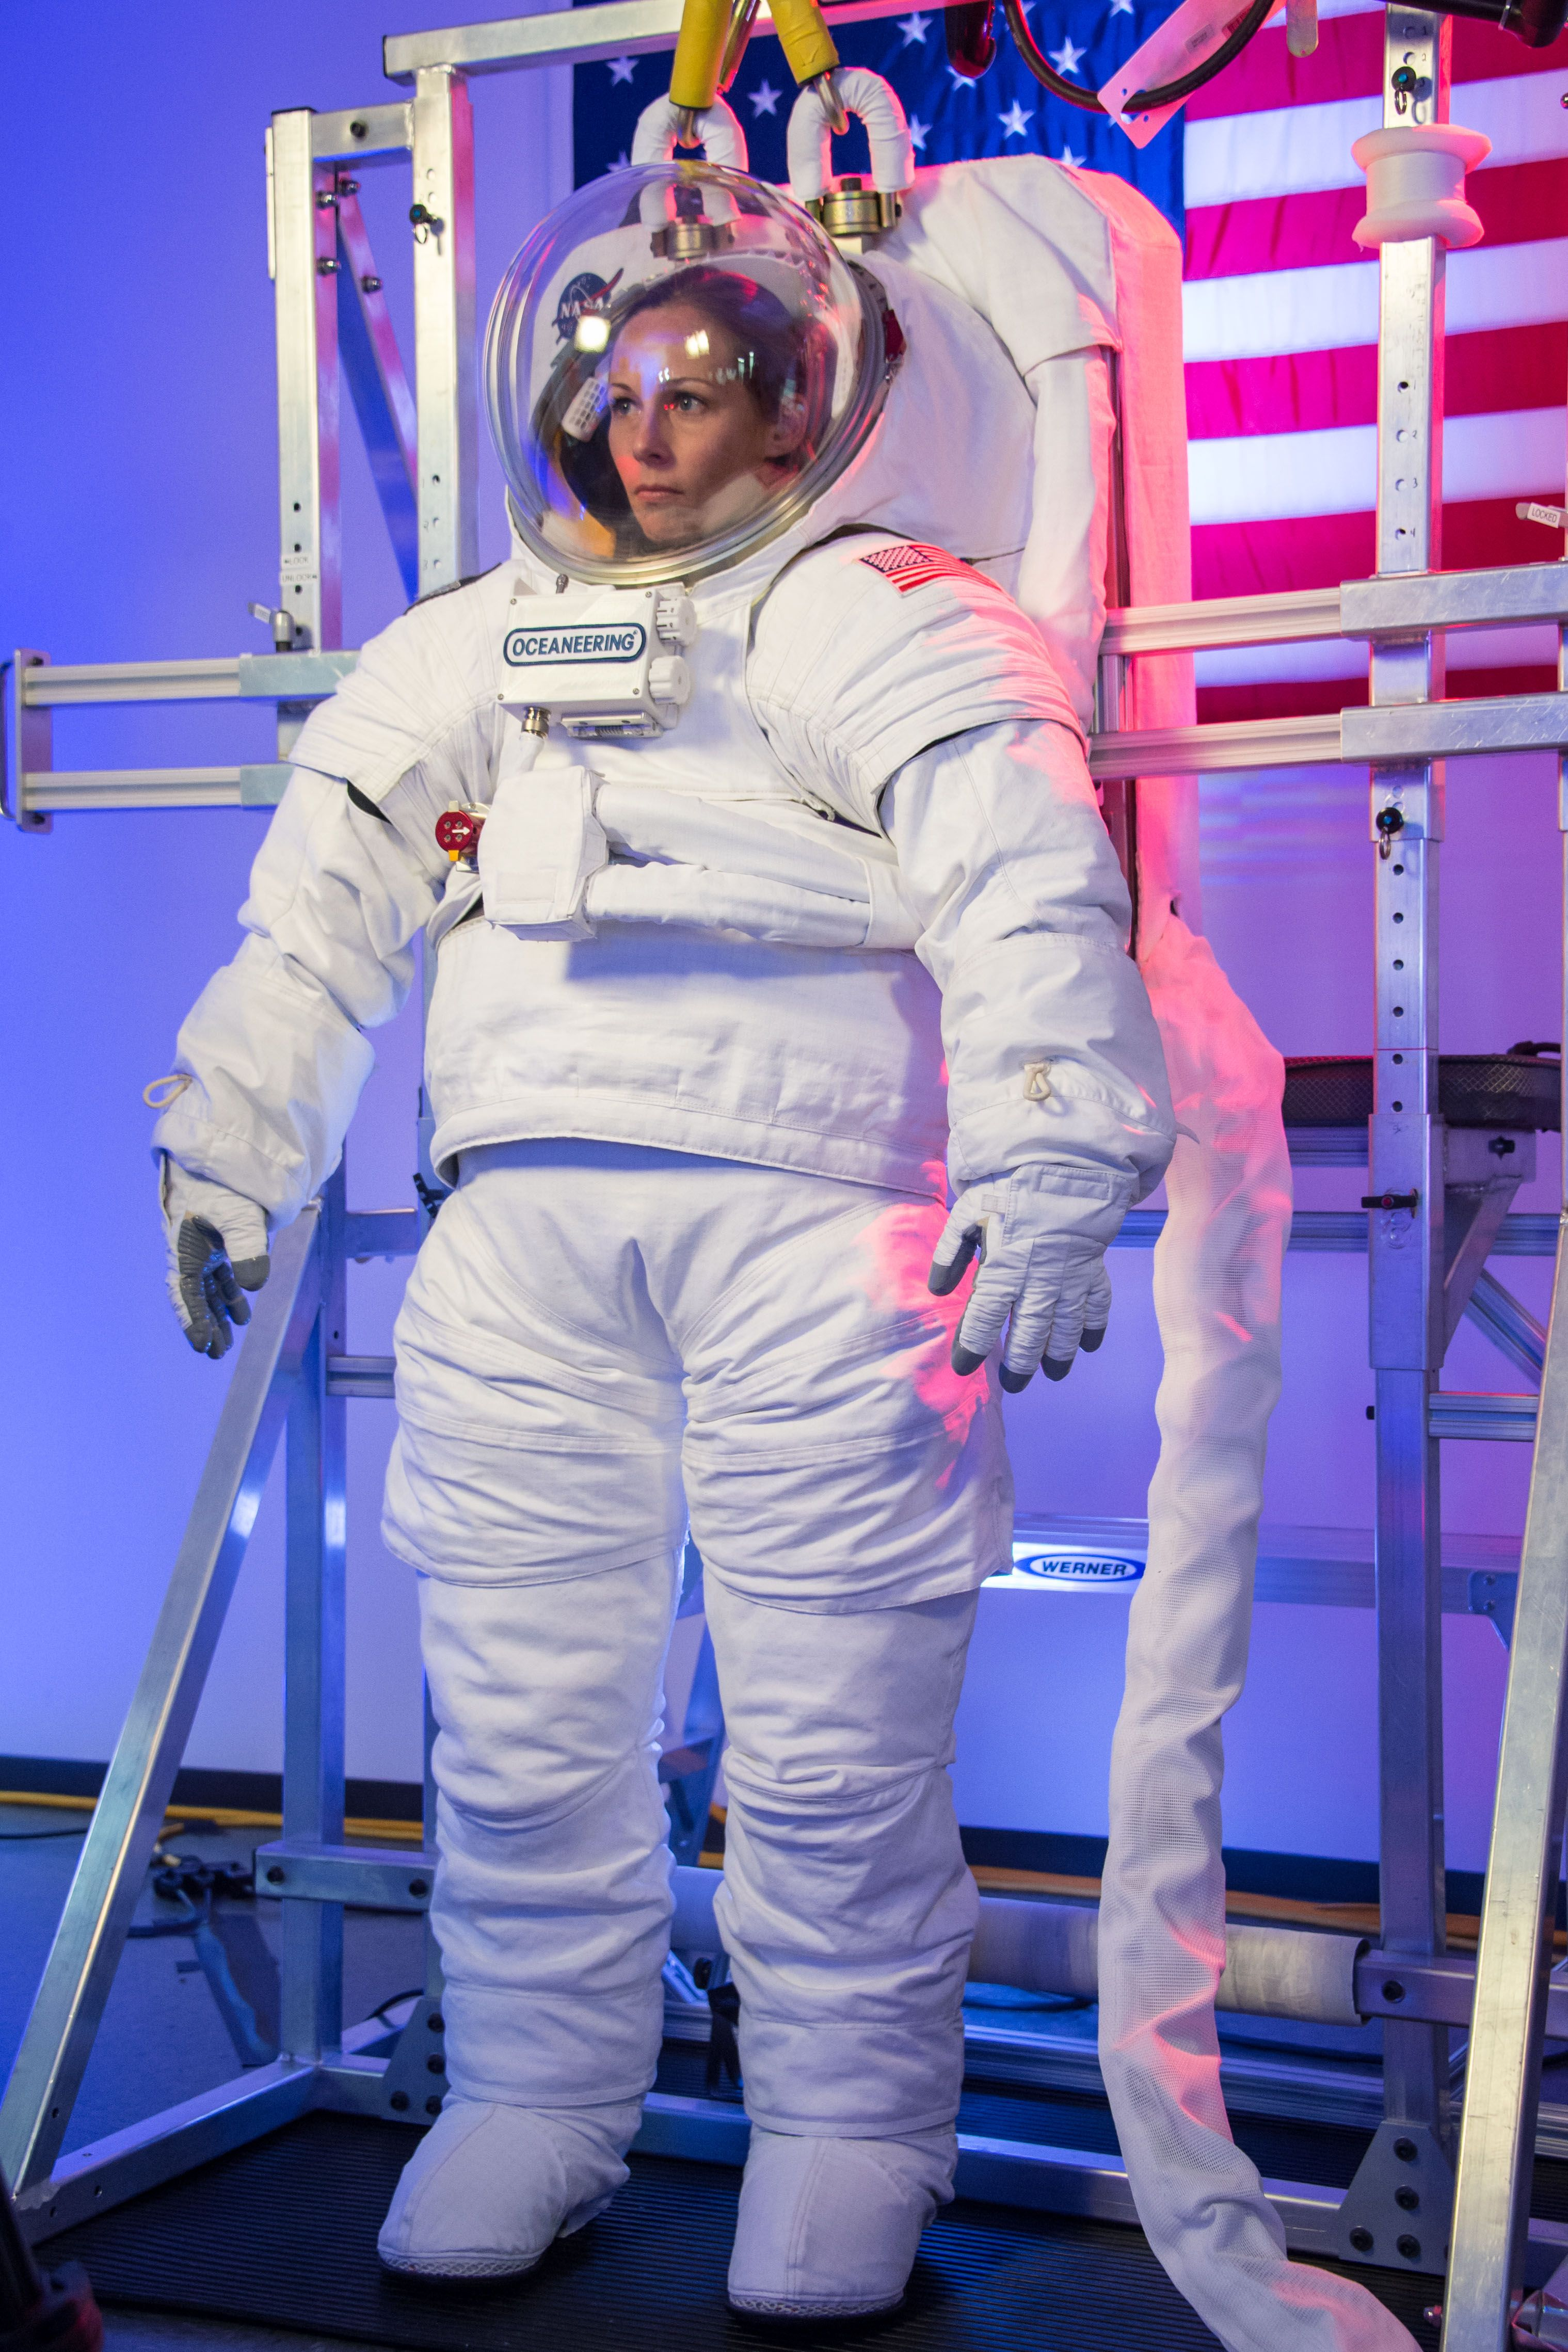 an astronaut in a space suit is motionless in outer space - photo #5